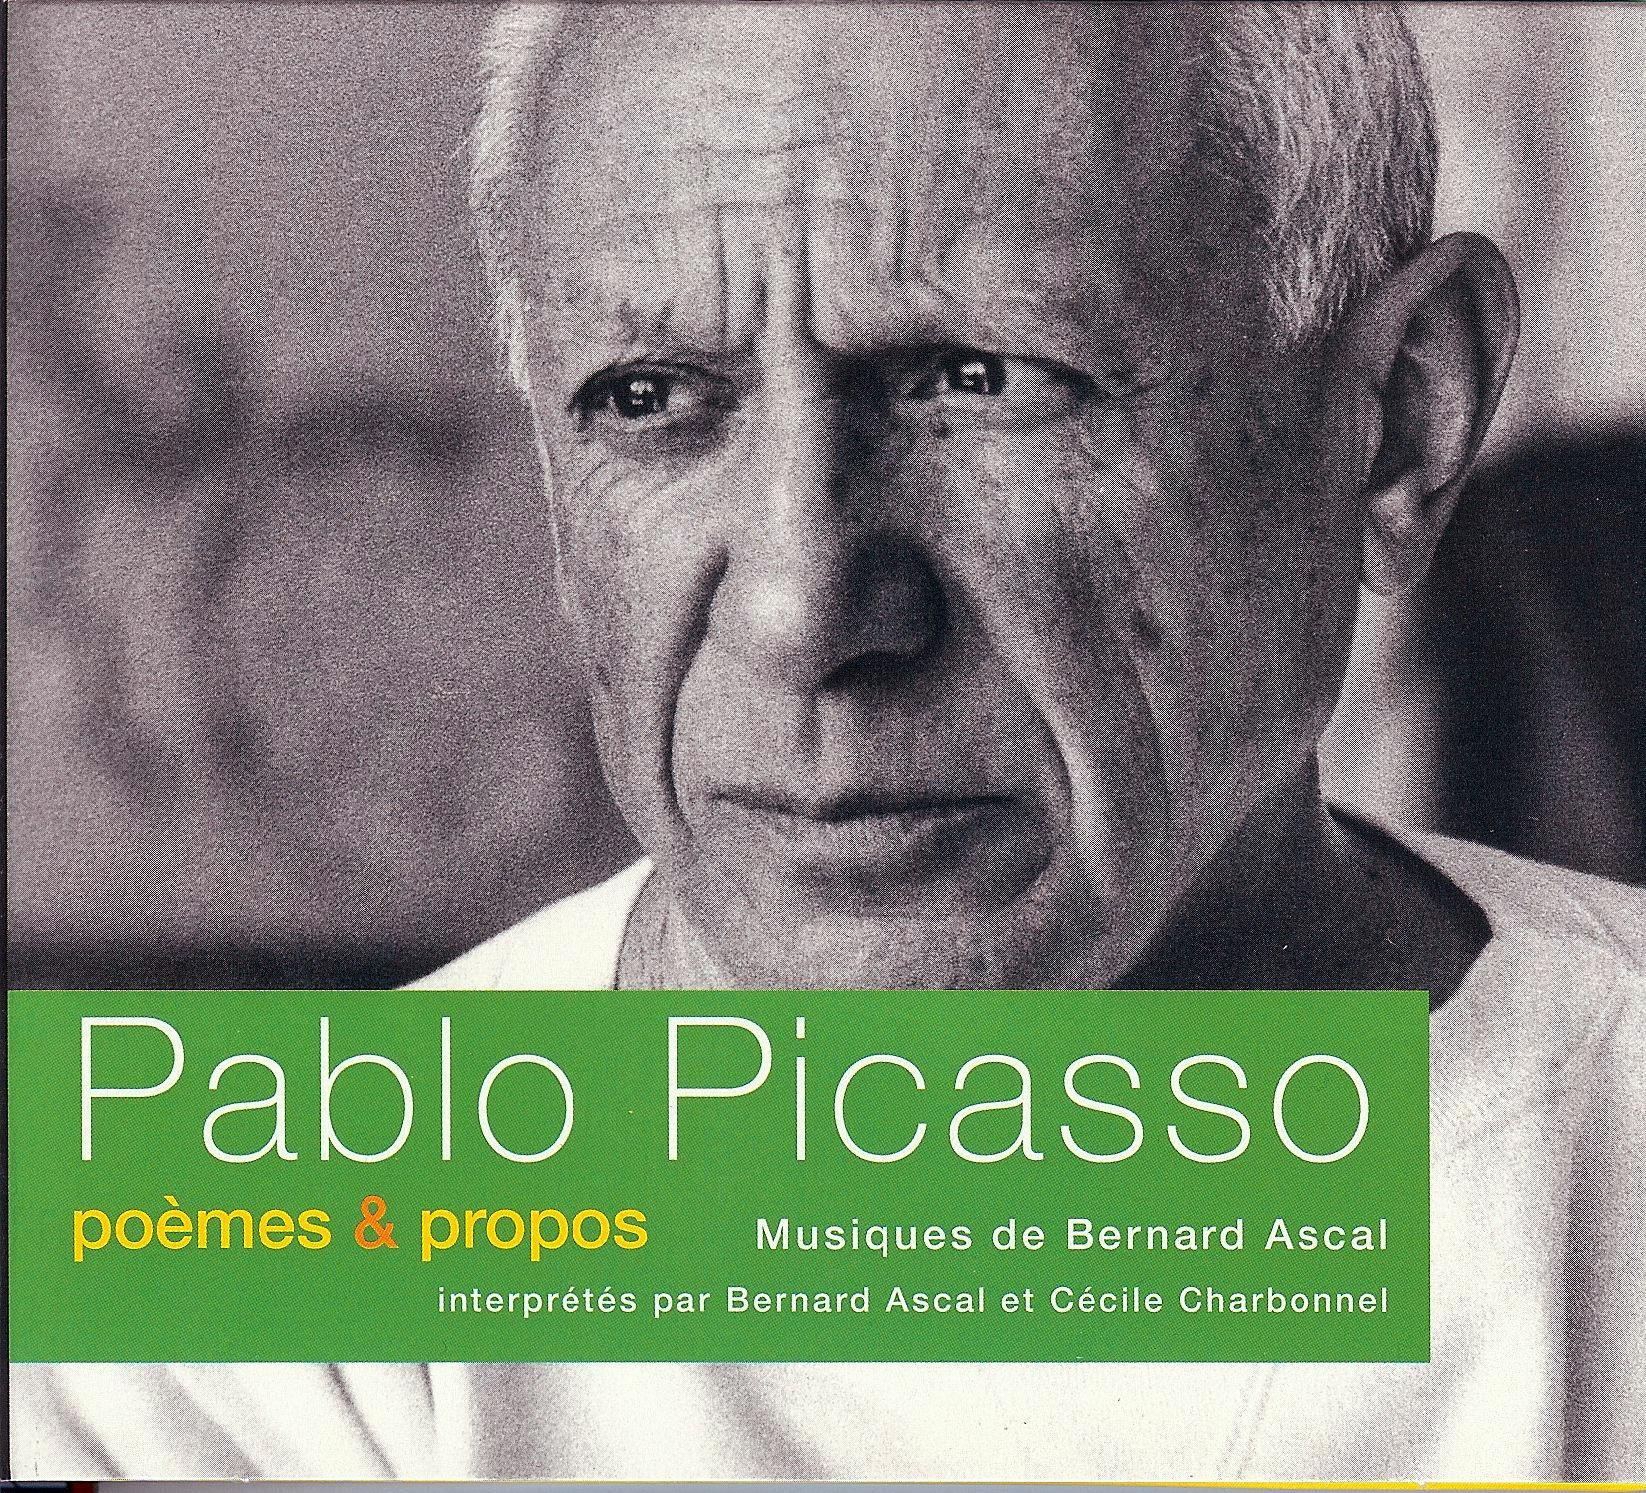 PABLO PICASSO - POEMES & PROPOS